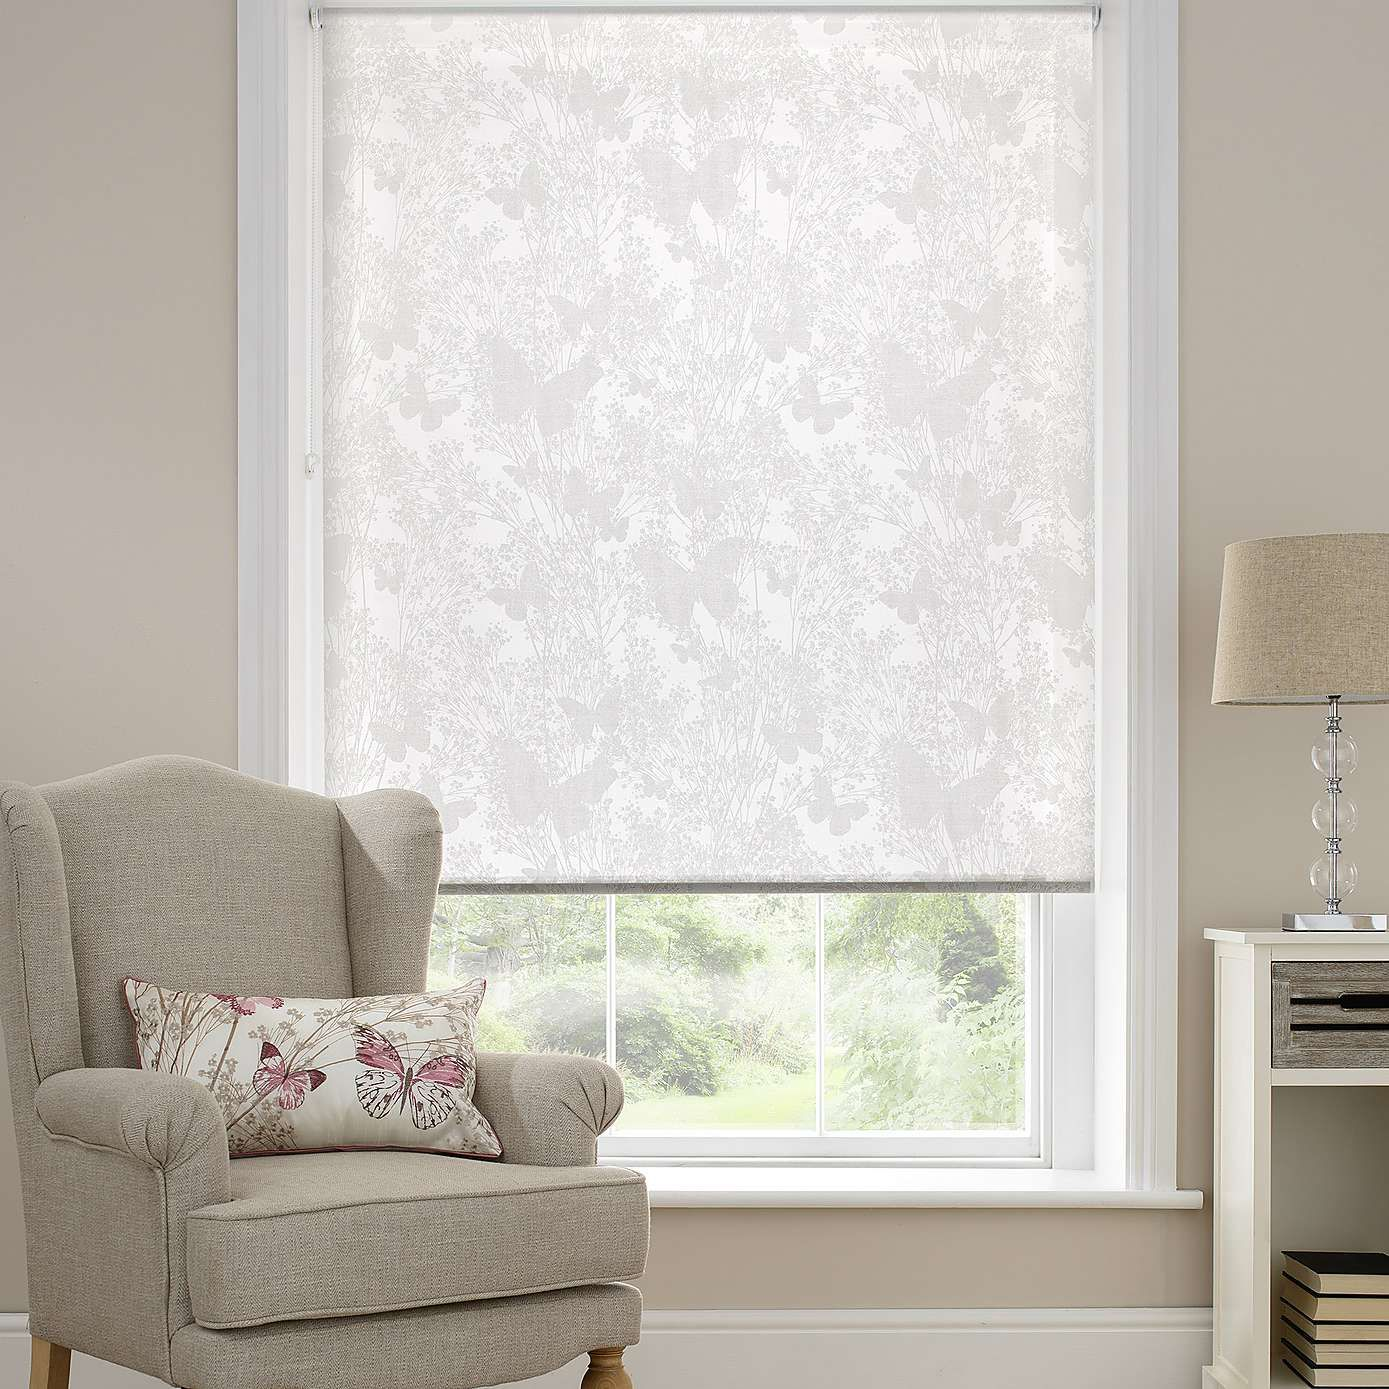 Botanical Butterfly Sheer Roller Blind Dunelm Sheer